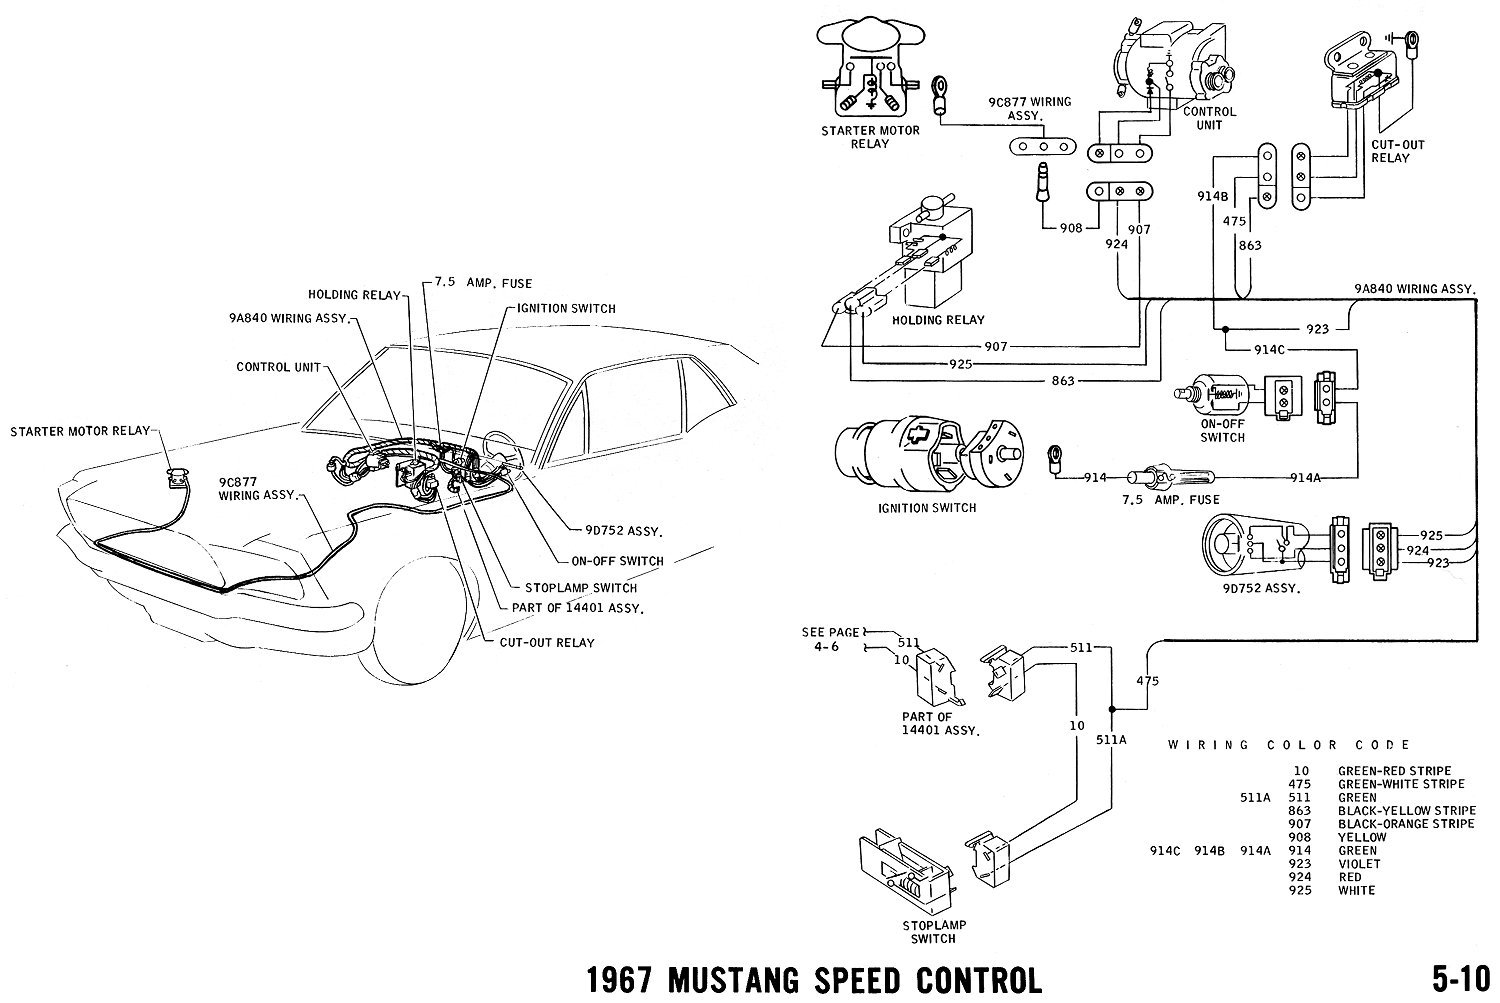 Pontiac Aztek Wiring Diagram Manual Of 2001 Schematic 67 Mustang Under Dash Harness Free Engine Cooling Fan 2004